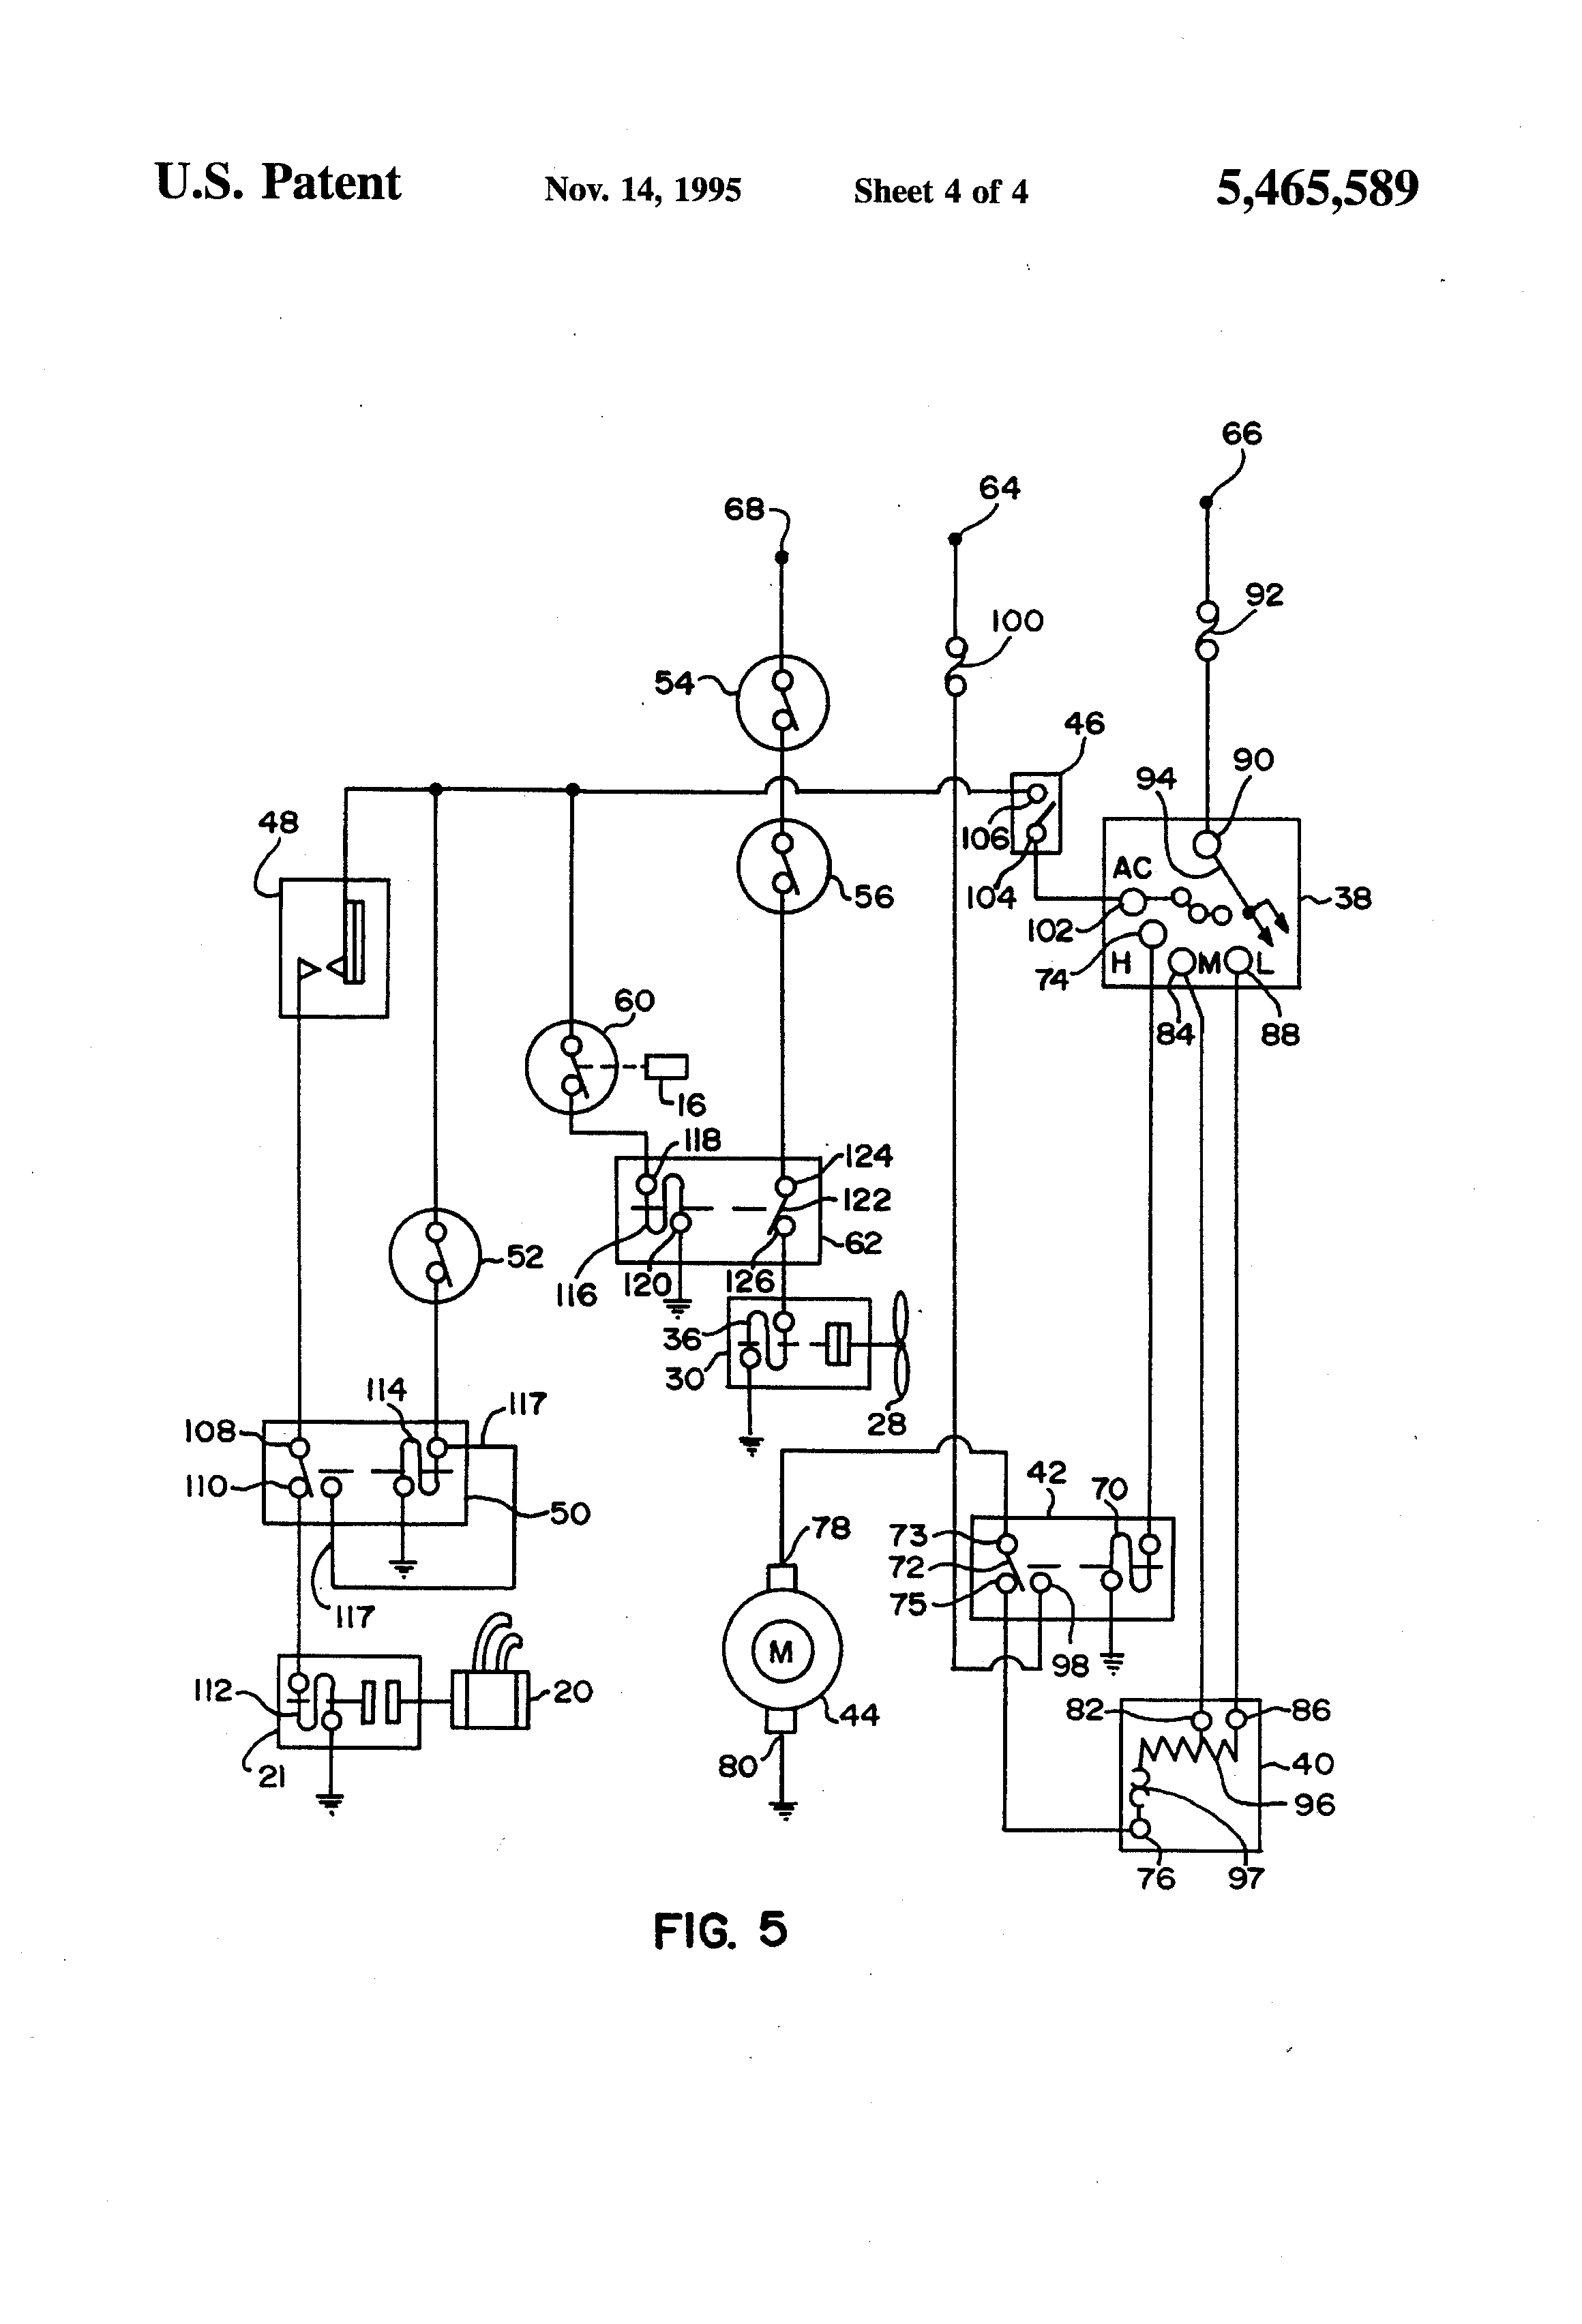 Wiring Diagram Database: 1999 International 4700 Wiring